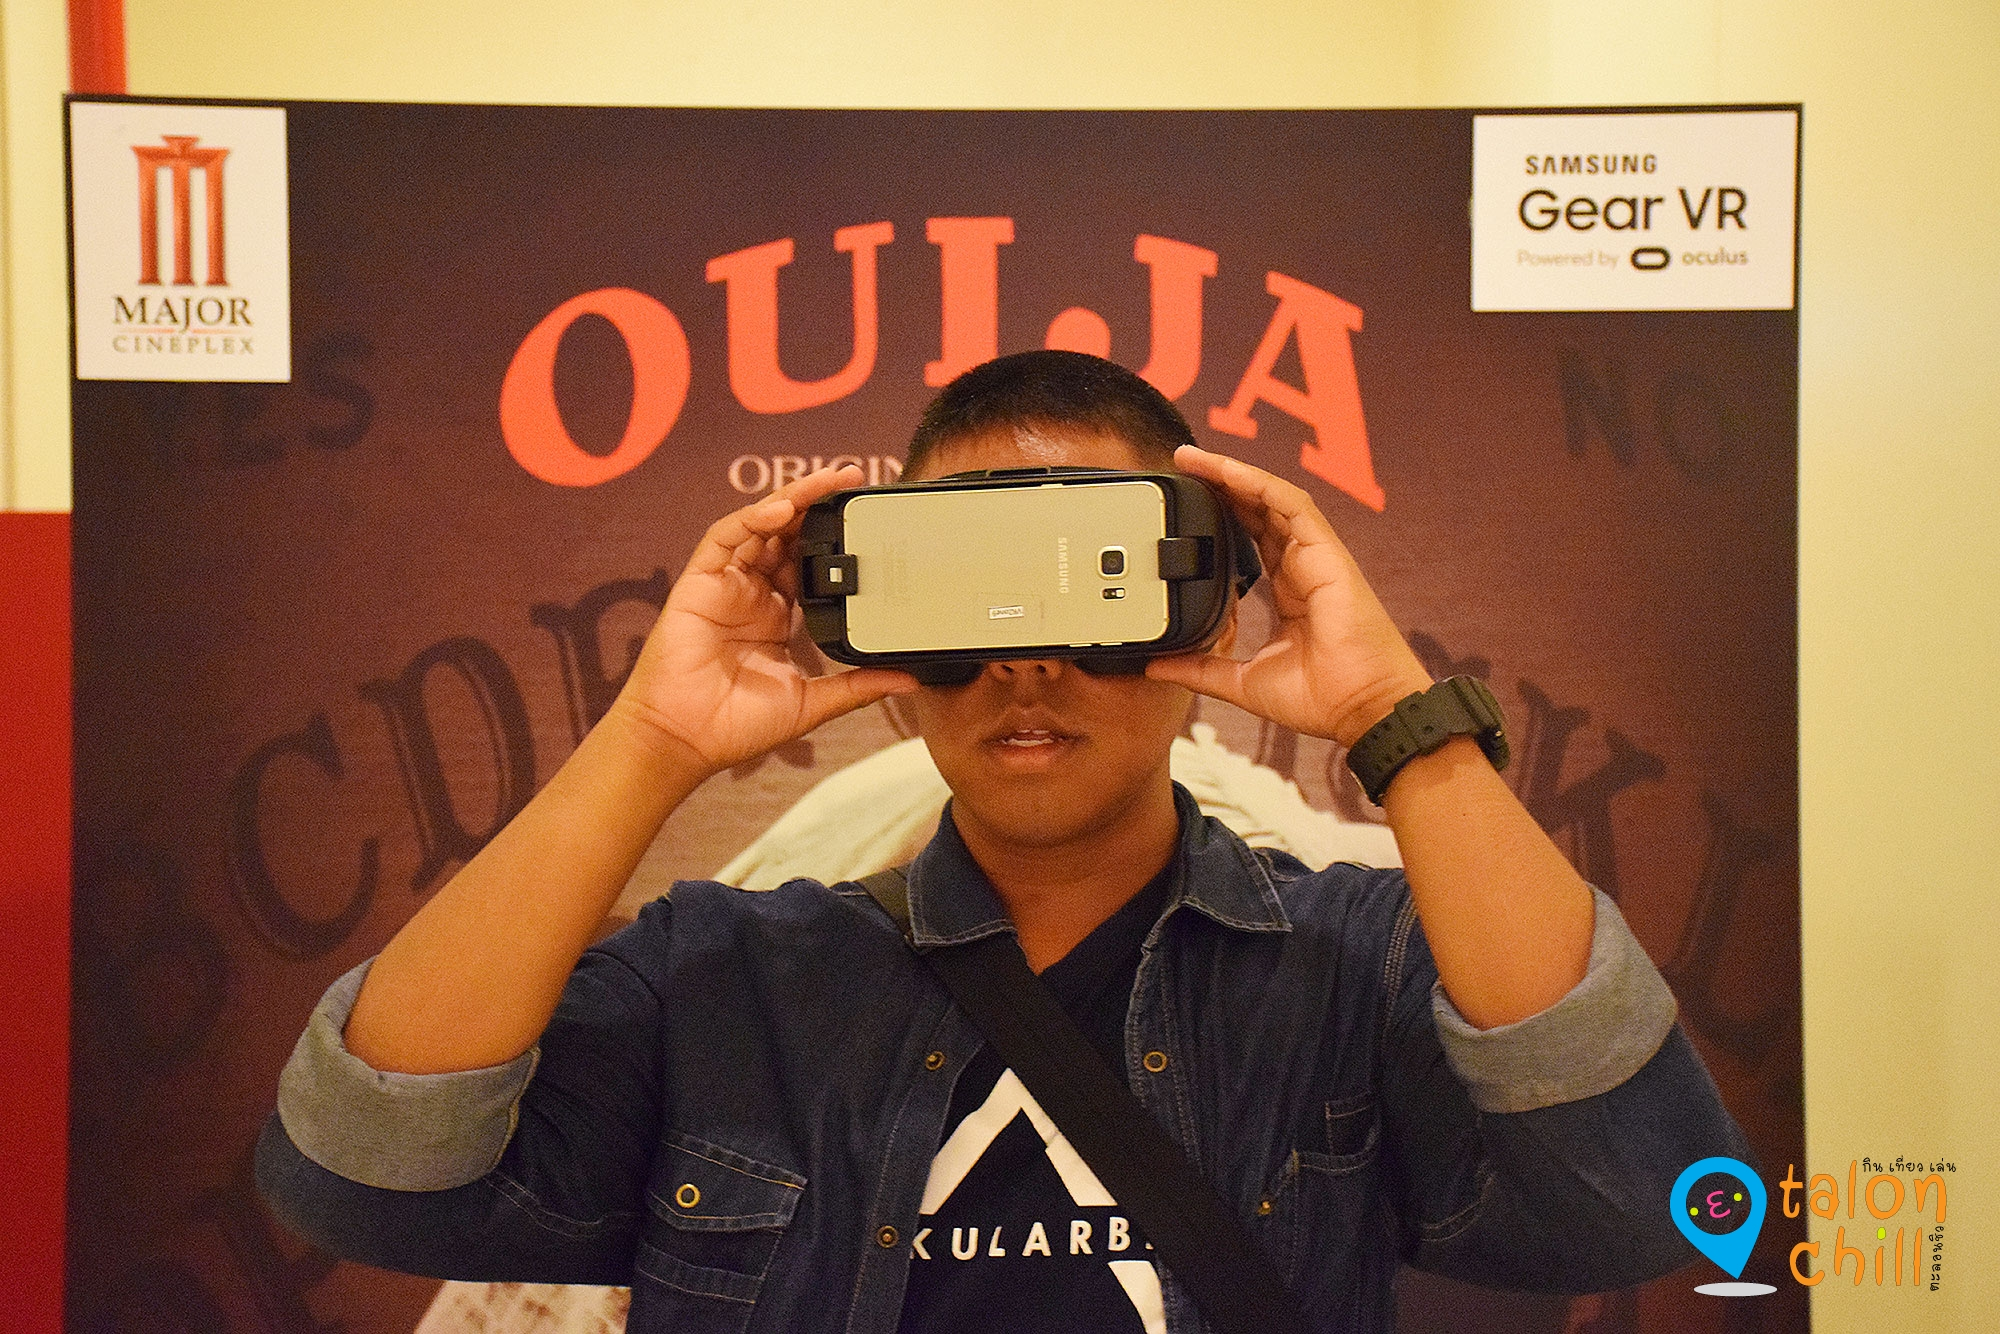 review samsung gear vr by oculus ouija 2 360 vr 20